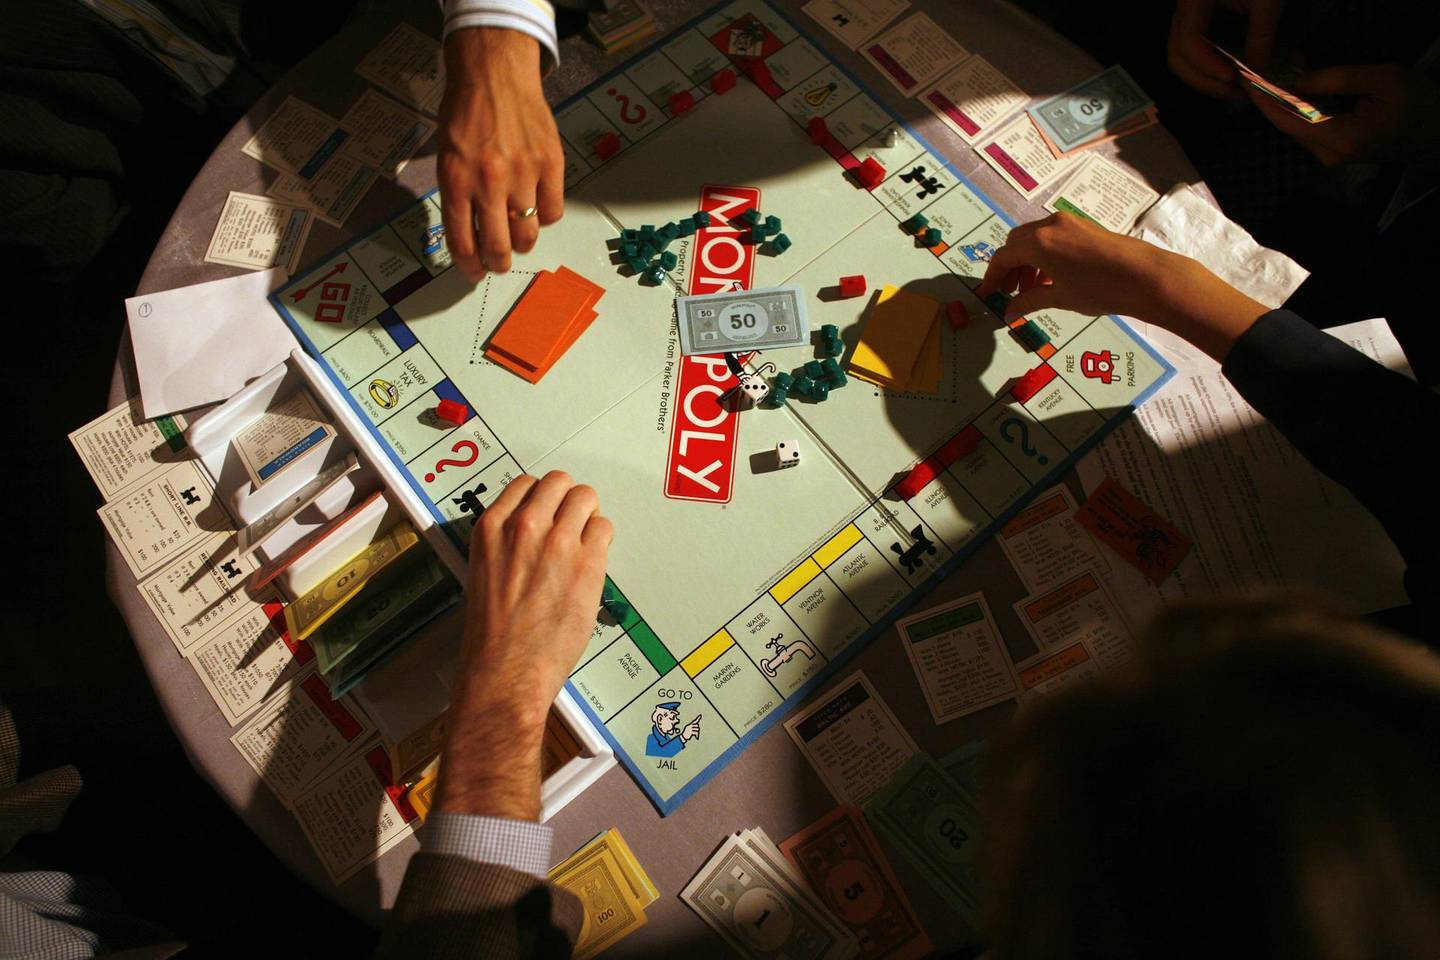 People move game pieces on the board game Monopoly, manufactured by Hasbro Inc., at the New York University Real Estate Institute Monopoly event on Tuesday, November 14, 2006. Photographer: Michael Nagle/Bloomberg News.